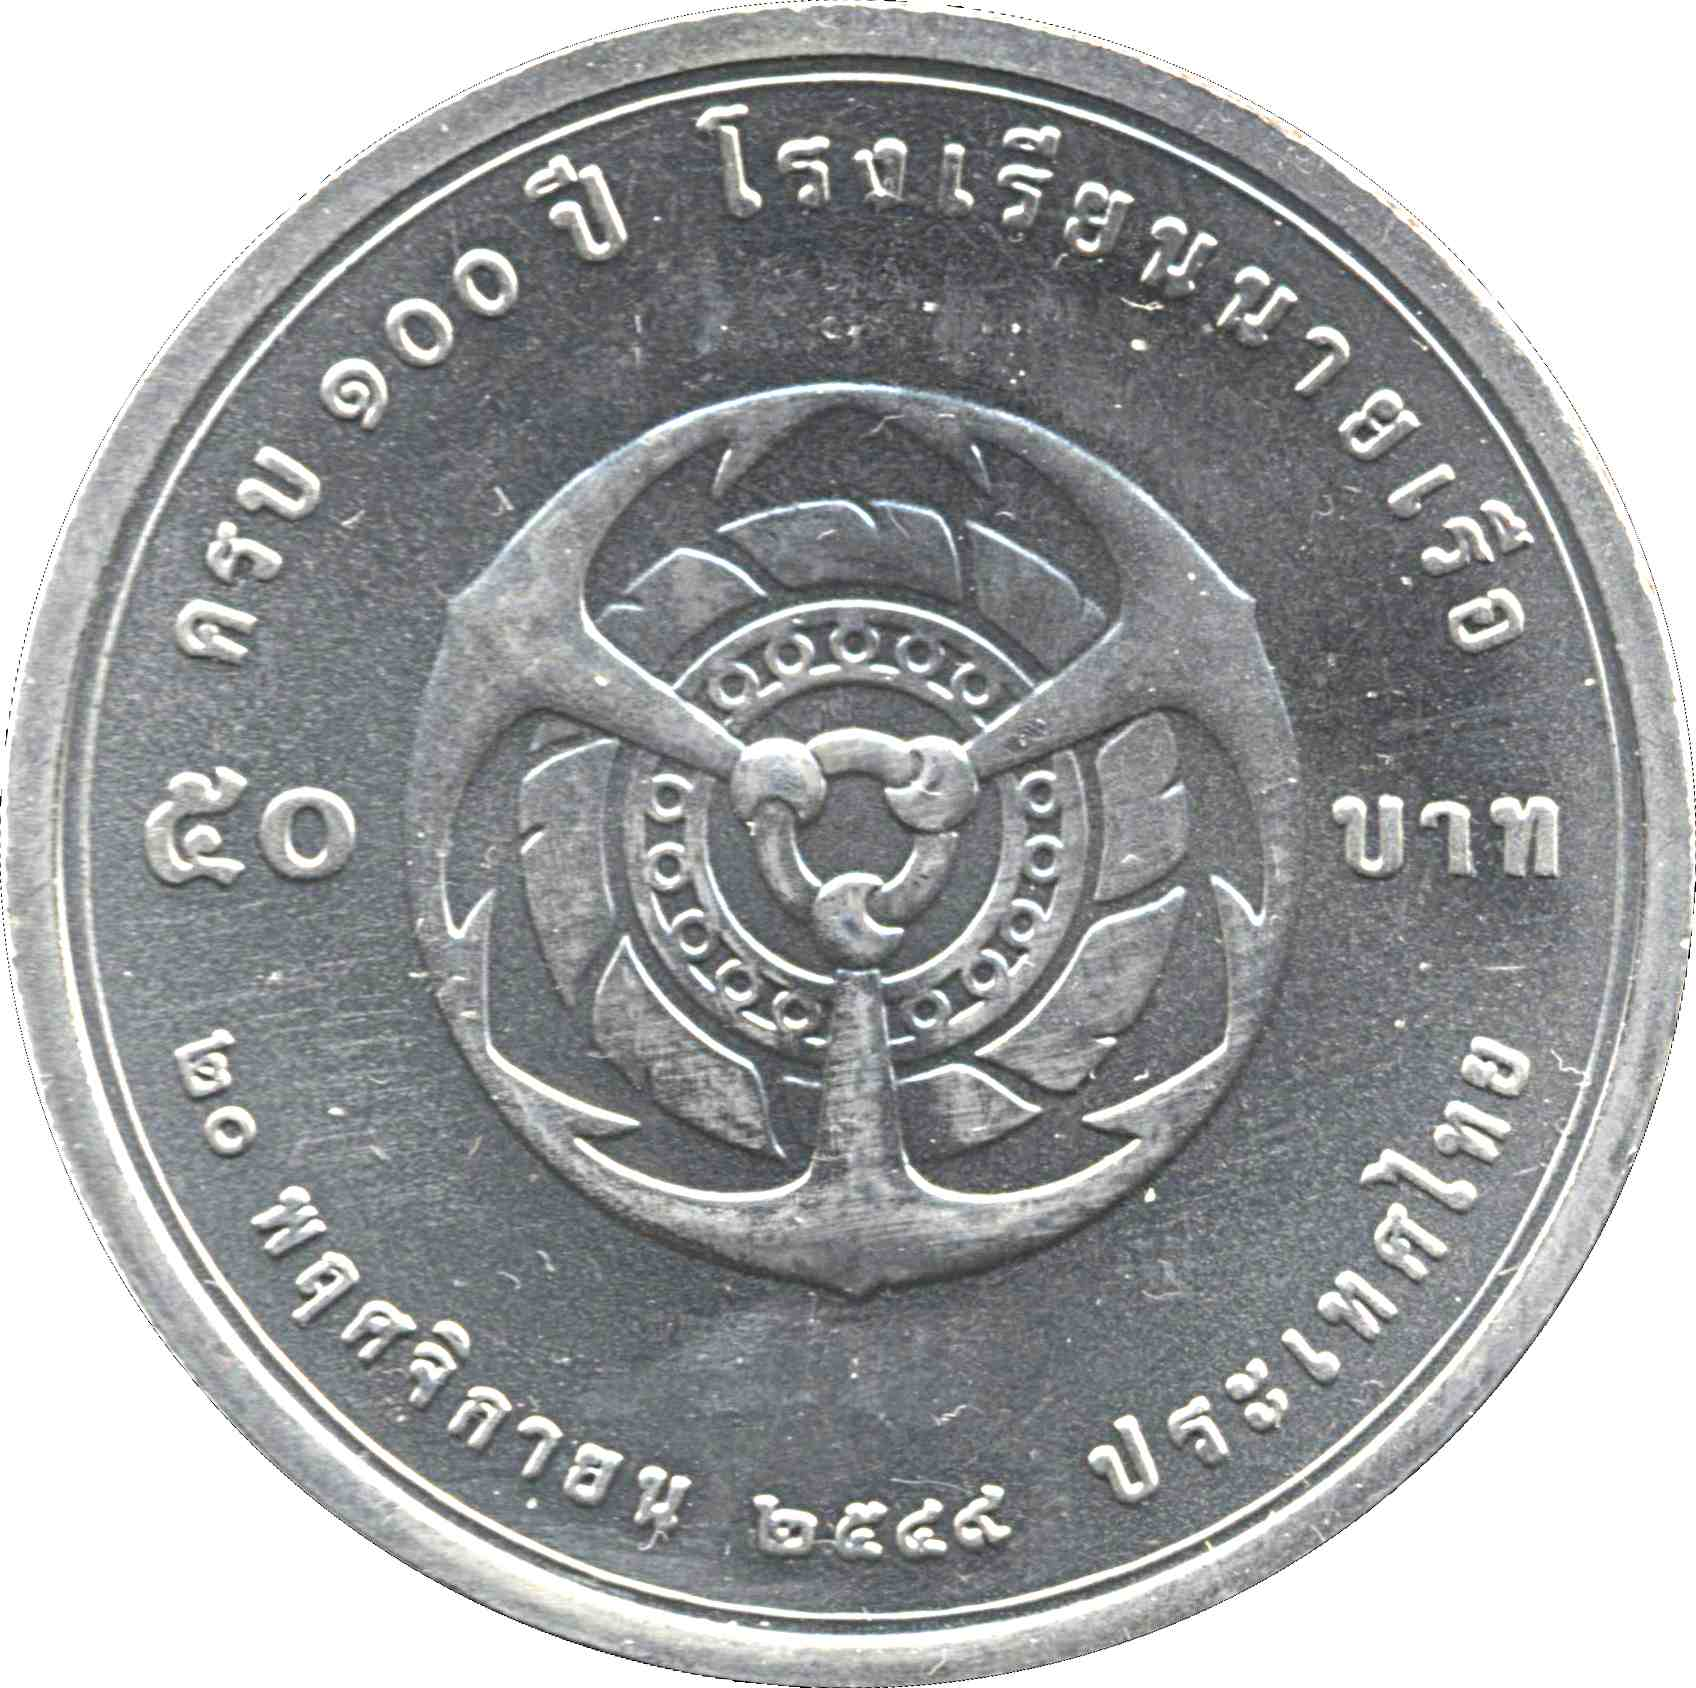 Thailand 50 baht Nickel Coin 100th Anniversary Naval Academy